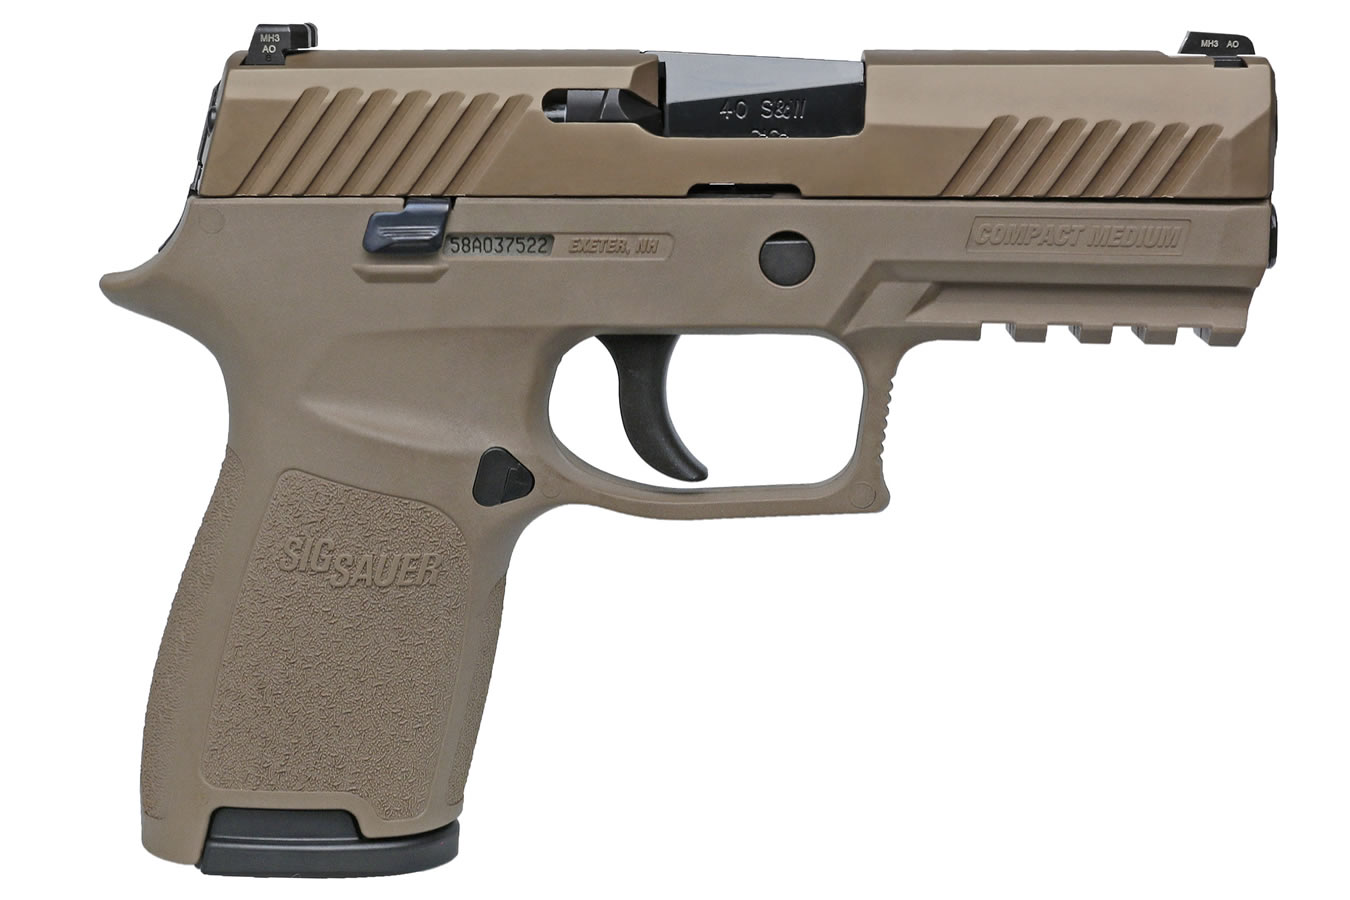 P320 Compact 40 S&W Flat Dark Earth (FDE) Striker-Fired Pistol with Night  Sights